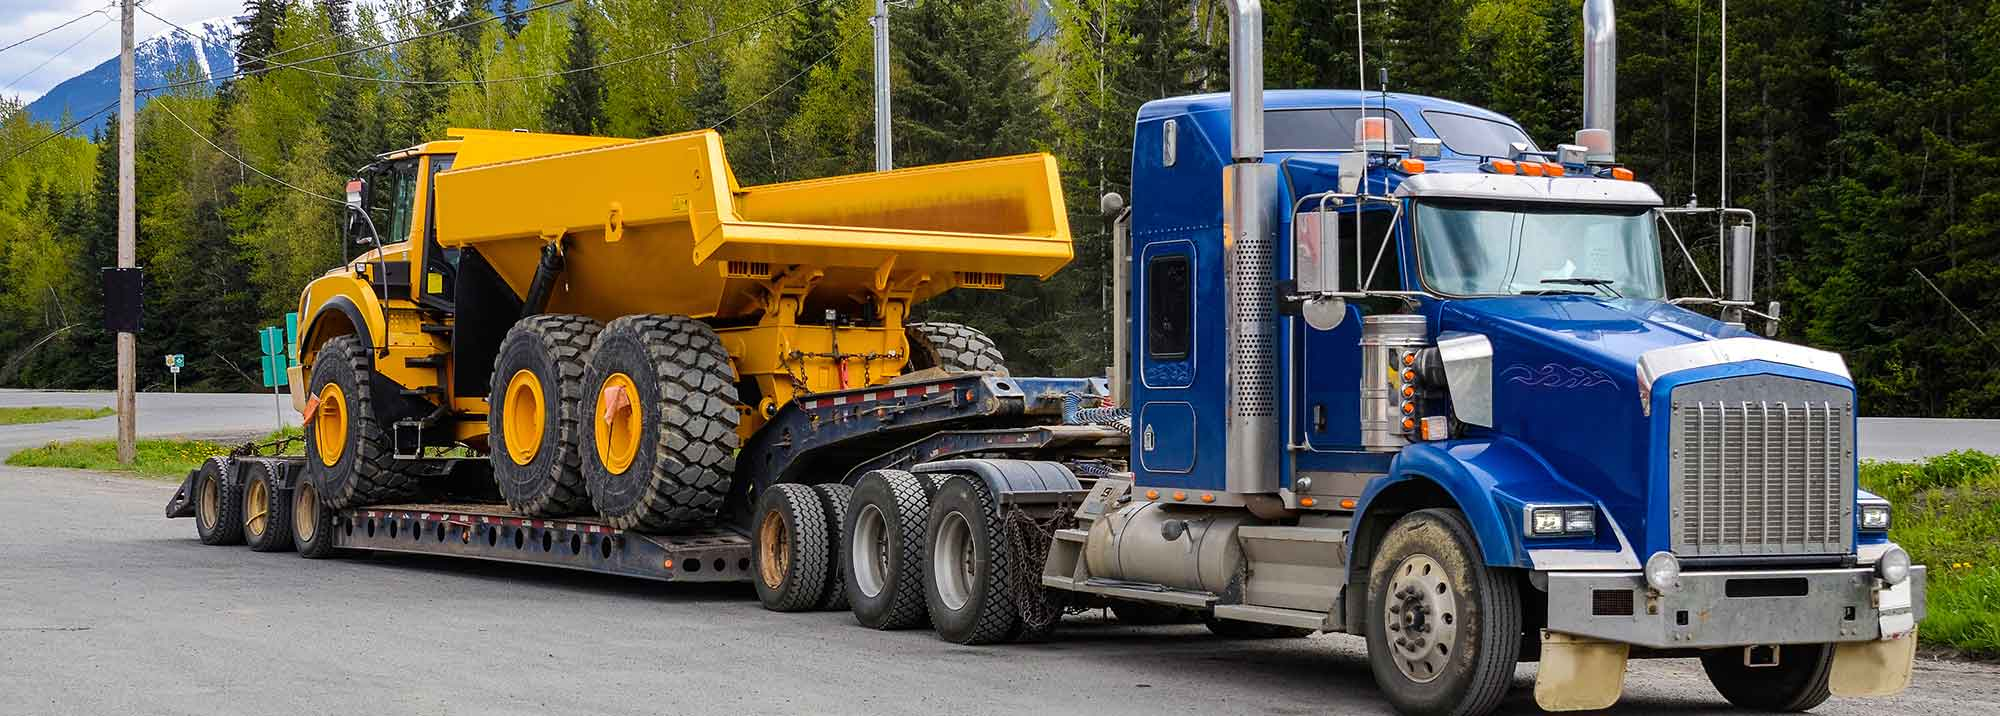 Fargo Transportation Services Limited Truck Flatbed And